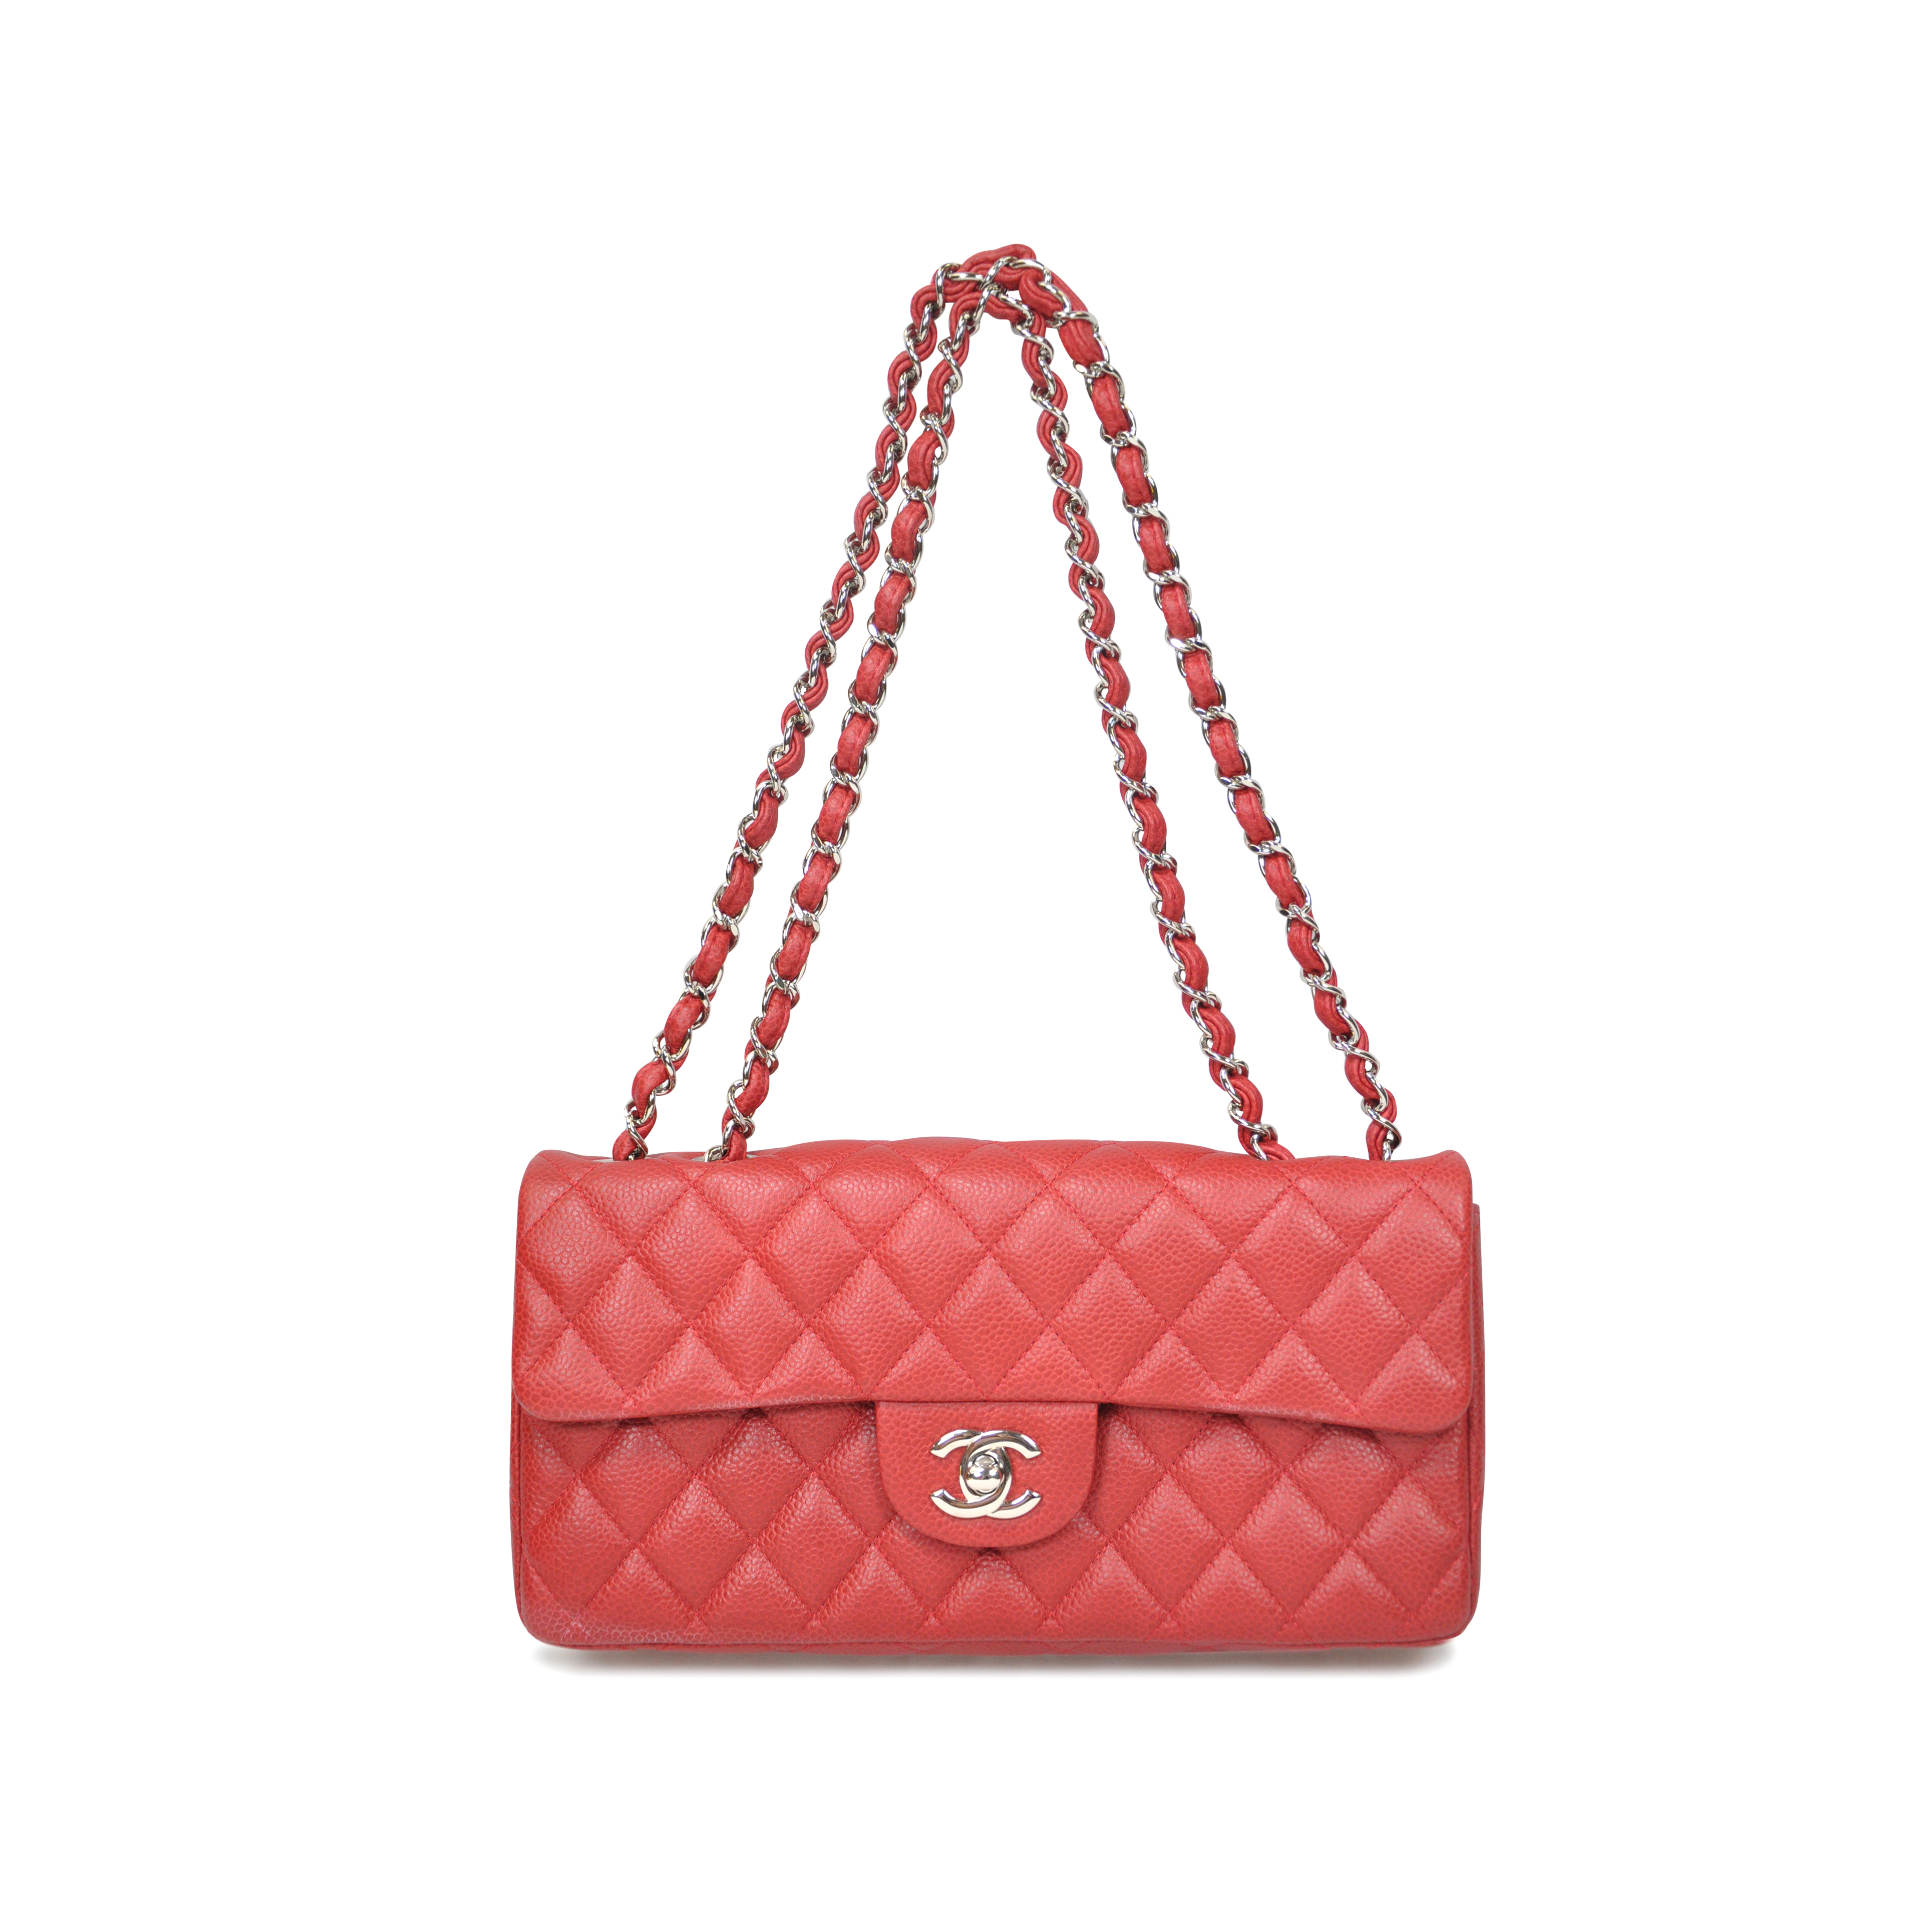 bbf54ca3b070 Authentic Second Hand Chanel East West Flap Bag (PSS-020-00016) | THE FIFTH  COLLECTION